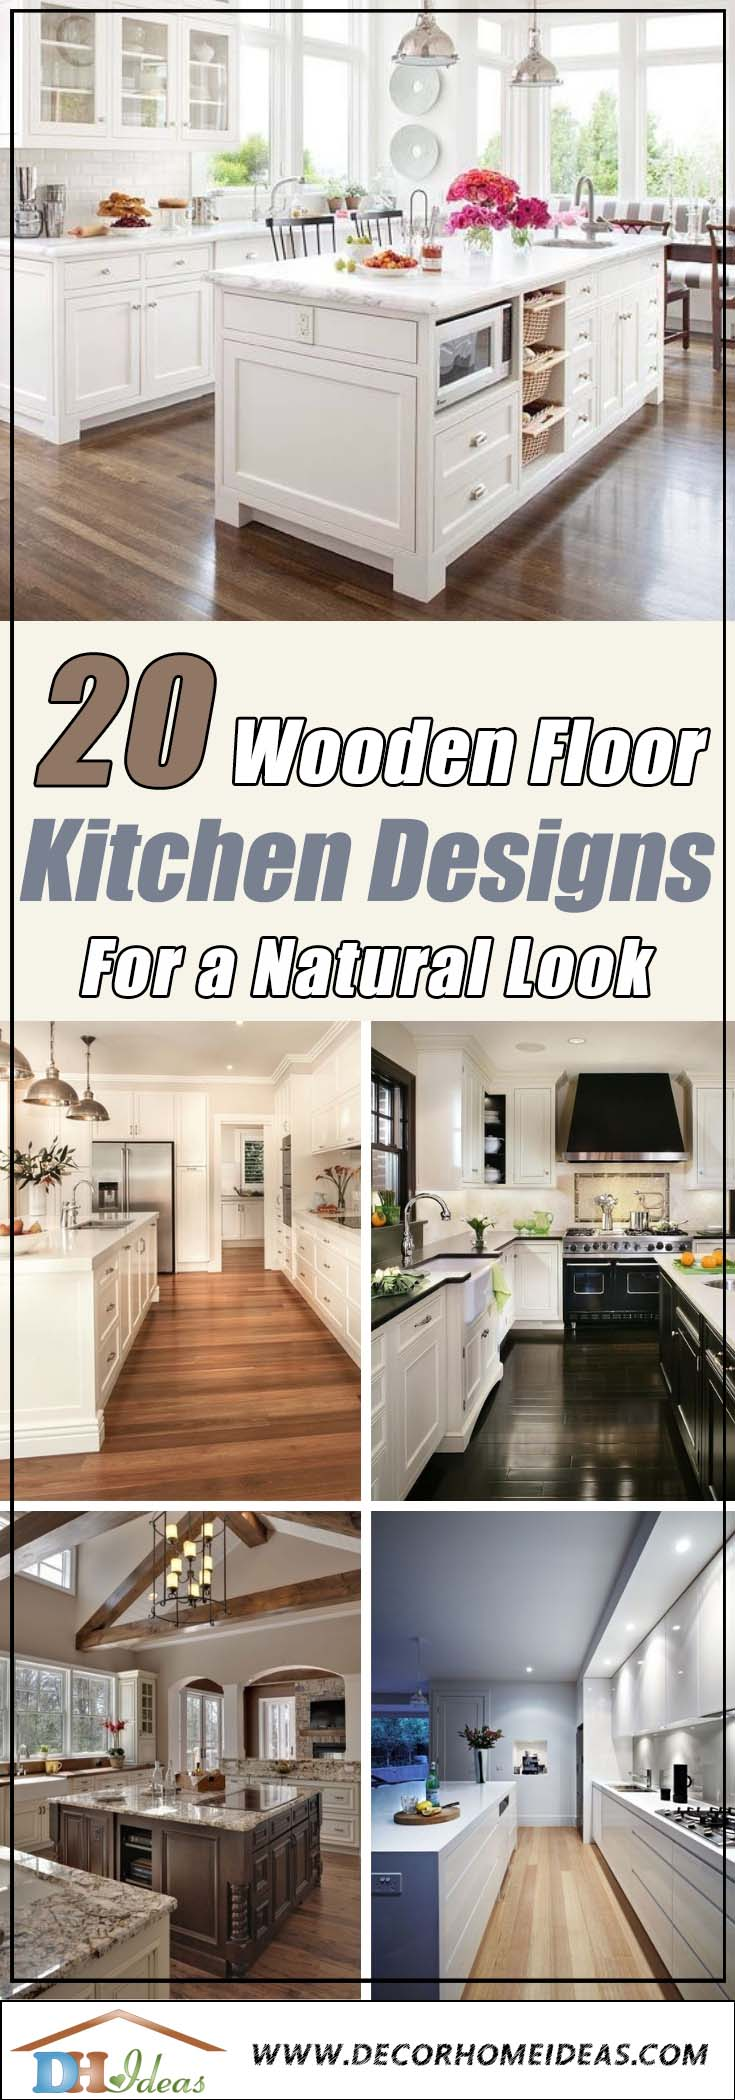 20 Wooden Floor Kitchen Desings Natural Look | Great ideas about wooden kitchen floors, materials and colors #kitchen #kitchendesign #floor #wooden #decoratingideas #homedecor #interiordecorating #decorhomeideas